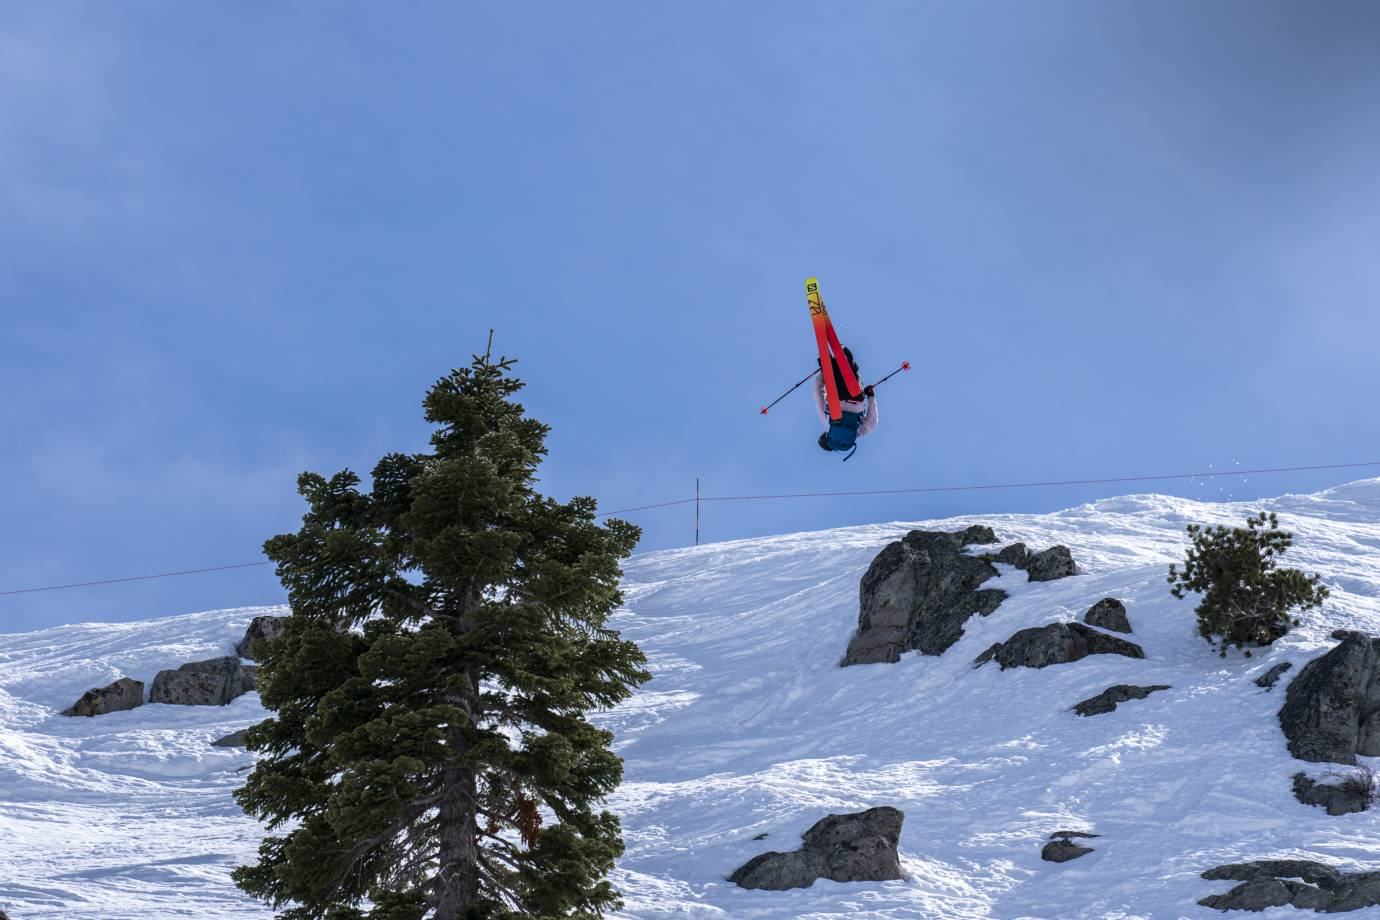 skier doing trick off rock at Red Bull Raid